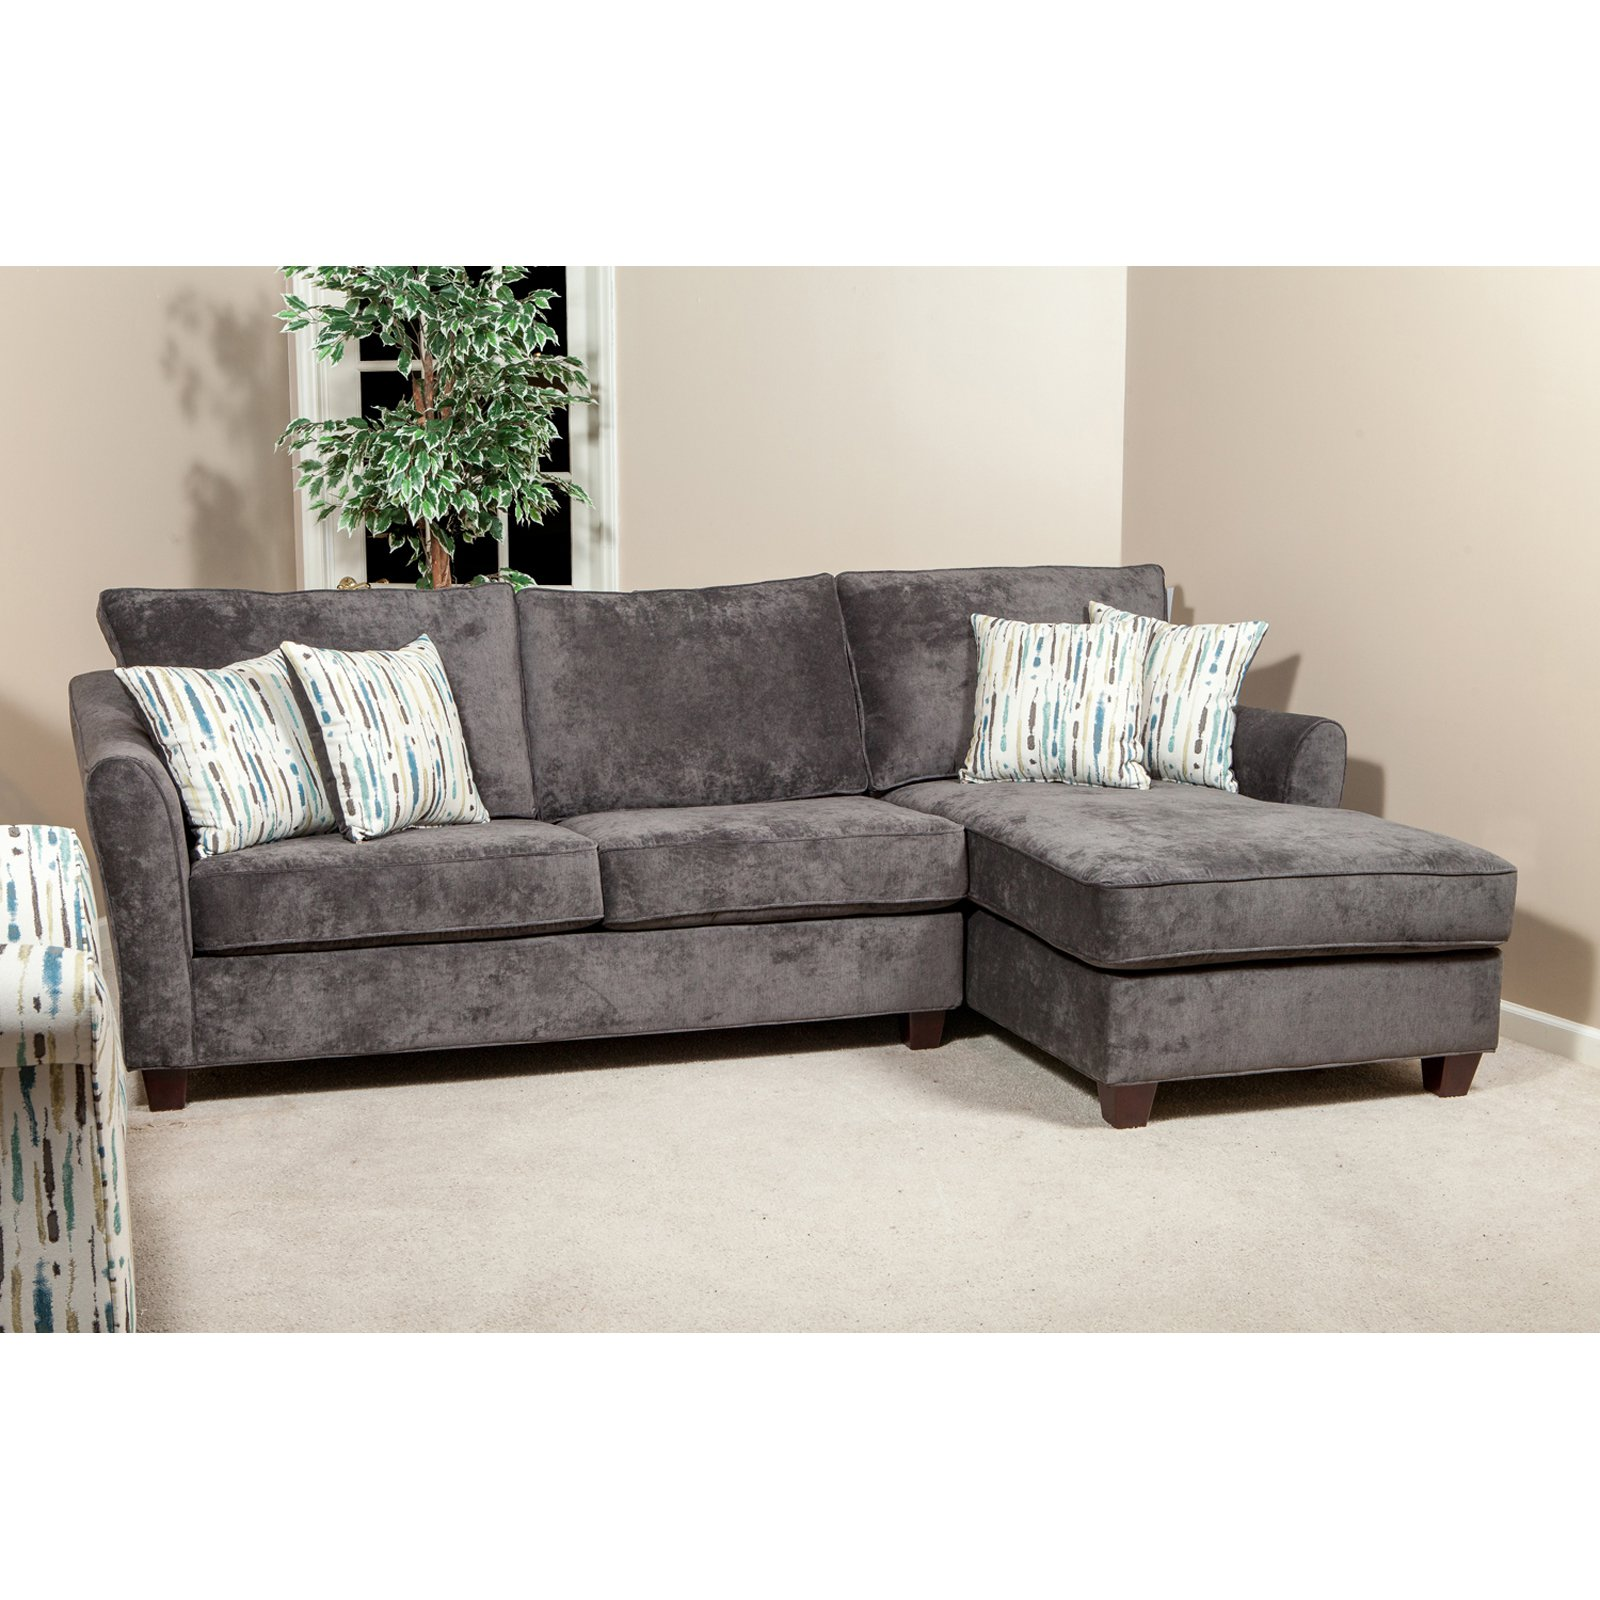 Chelsea Home Furniture Northborough Sectional Sofa Walmart